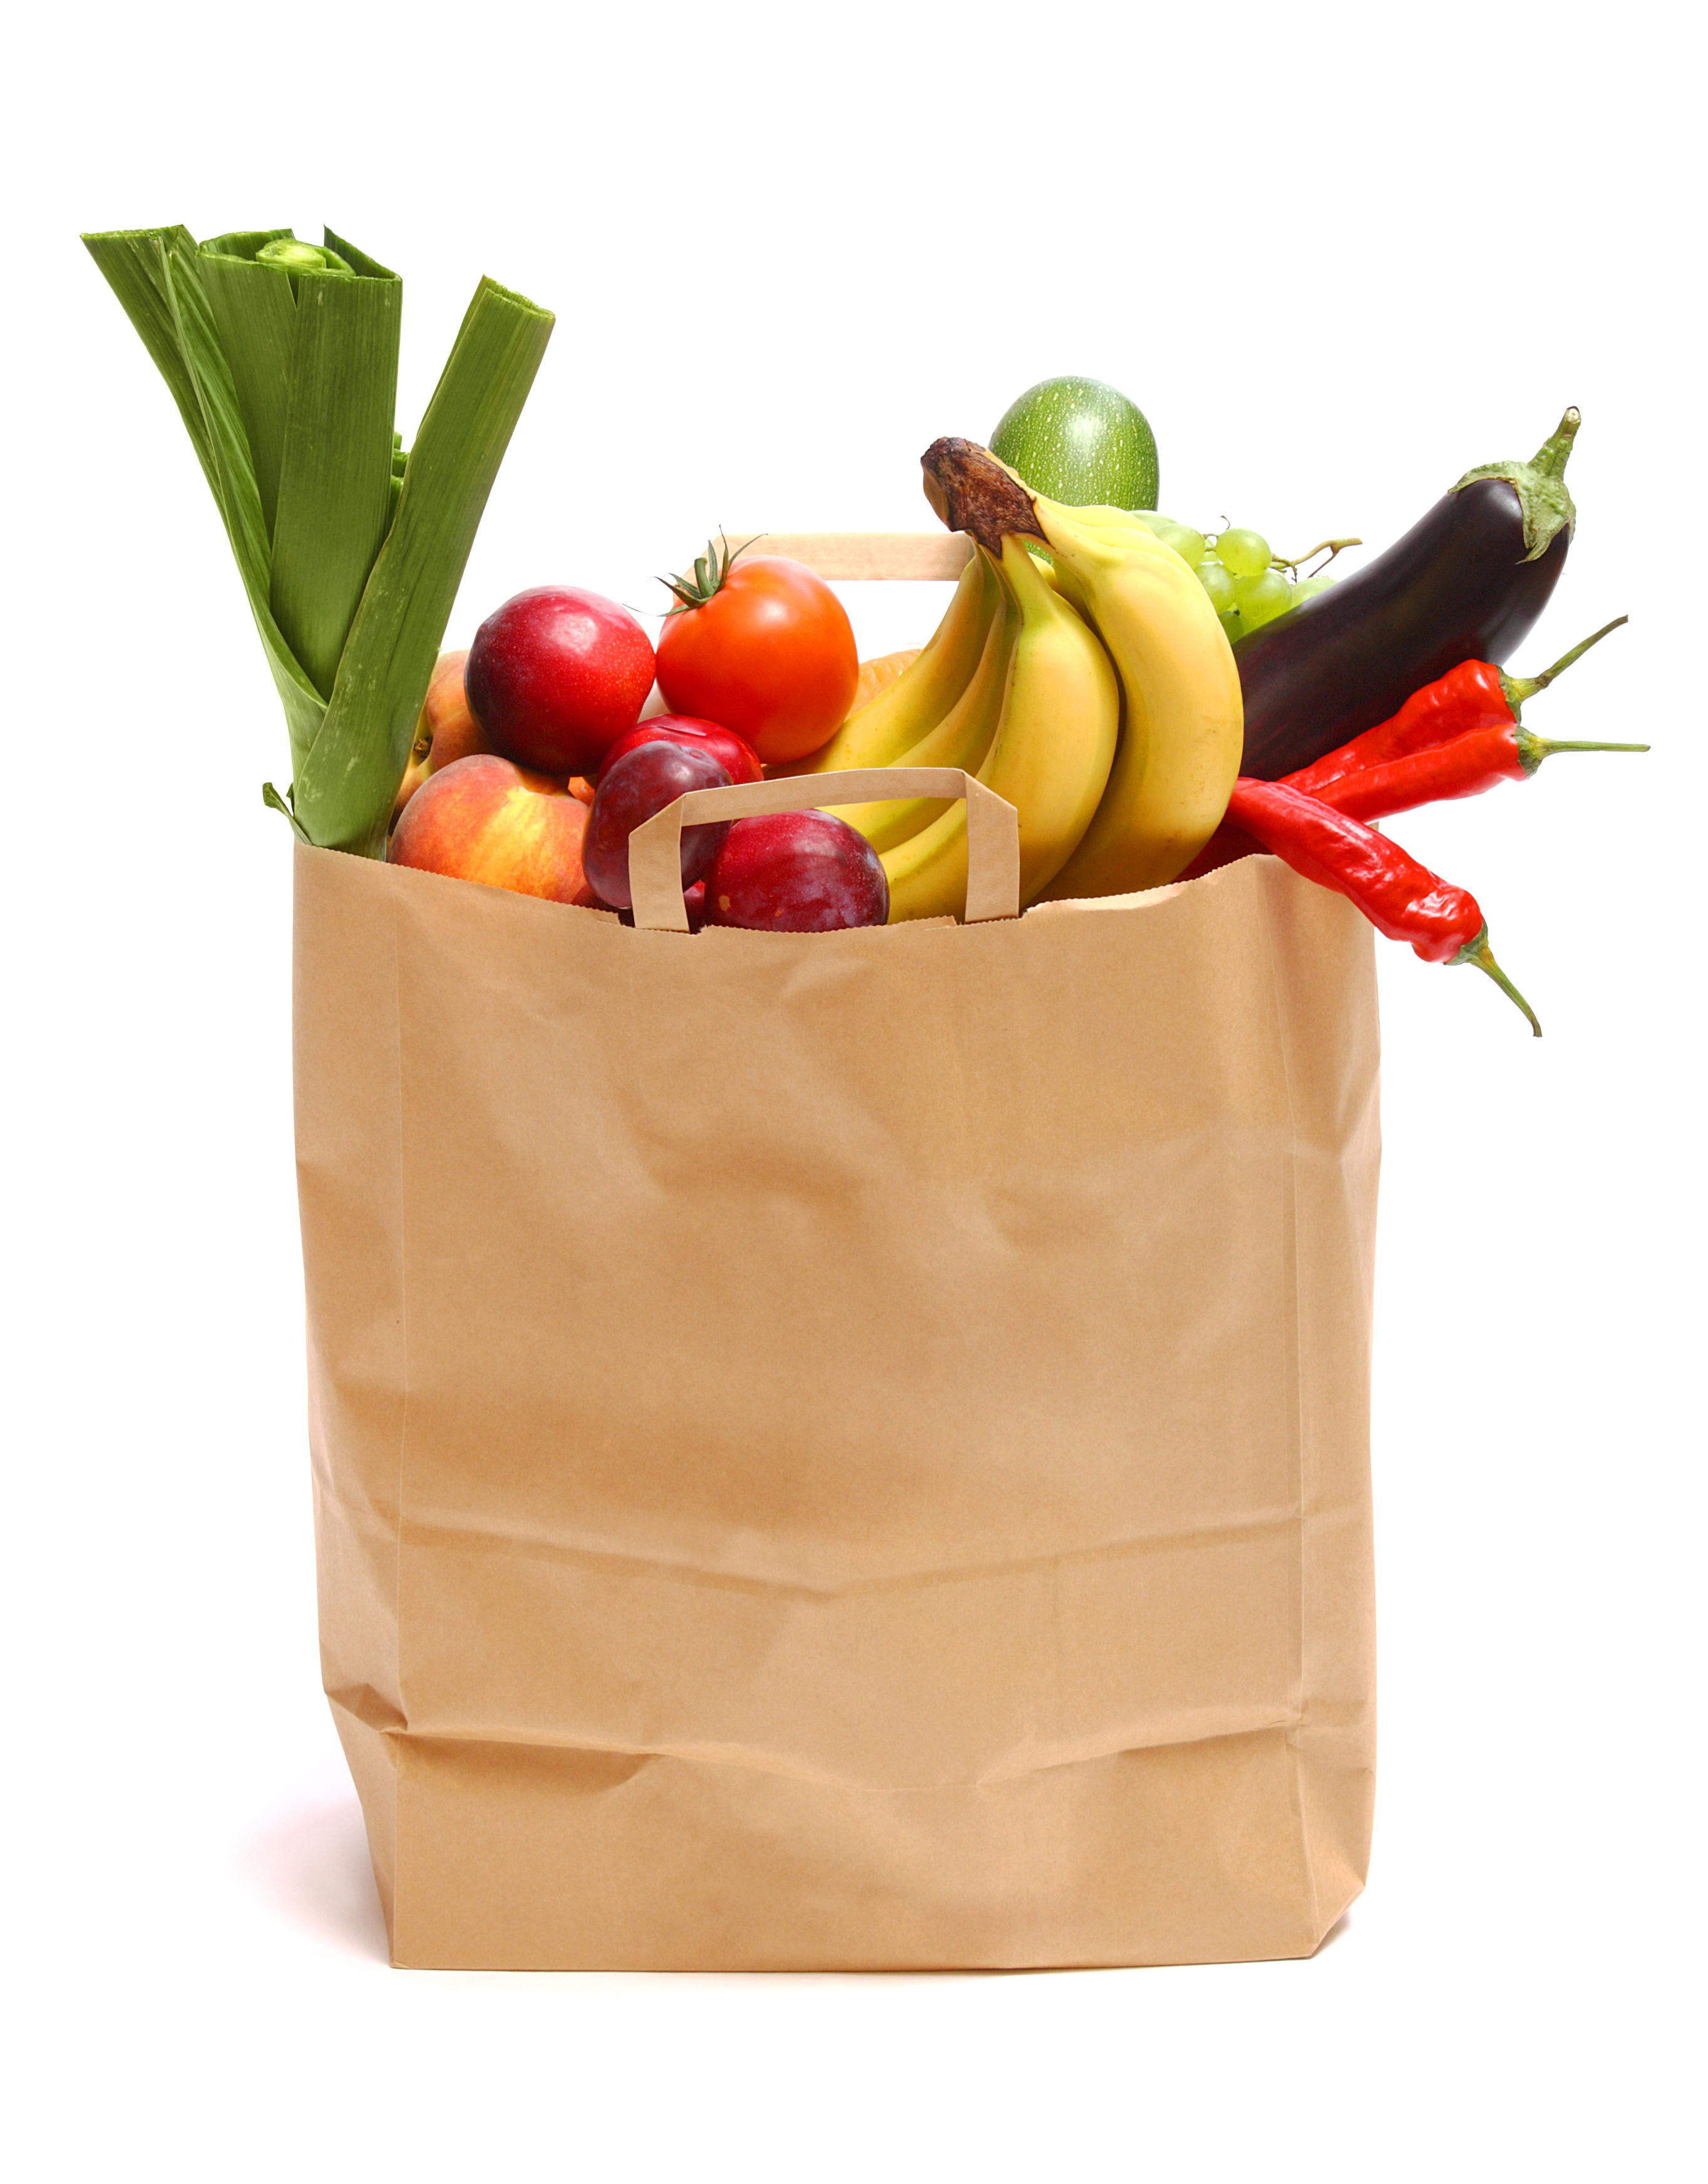 Grocery Bag Png (111+ images in Collection) Page 3.